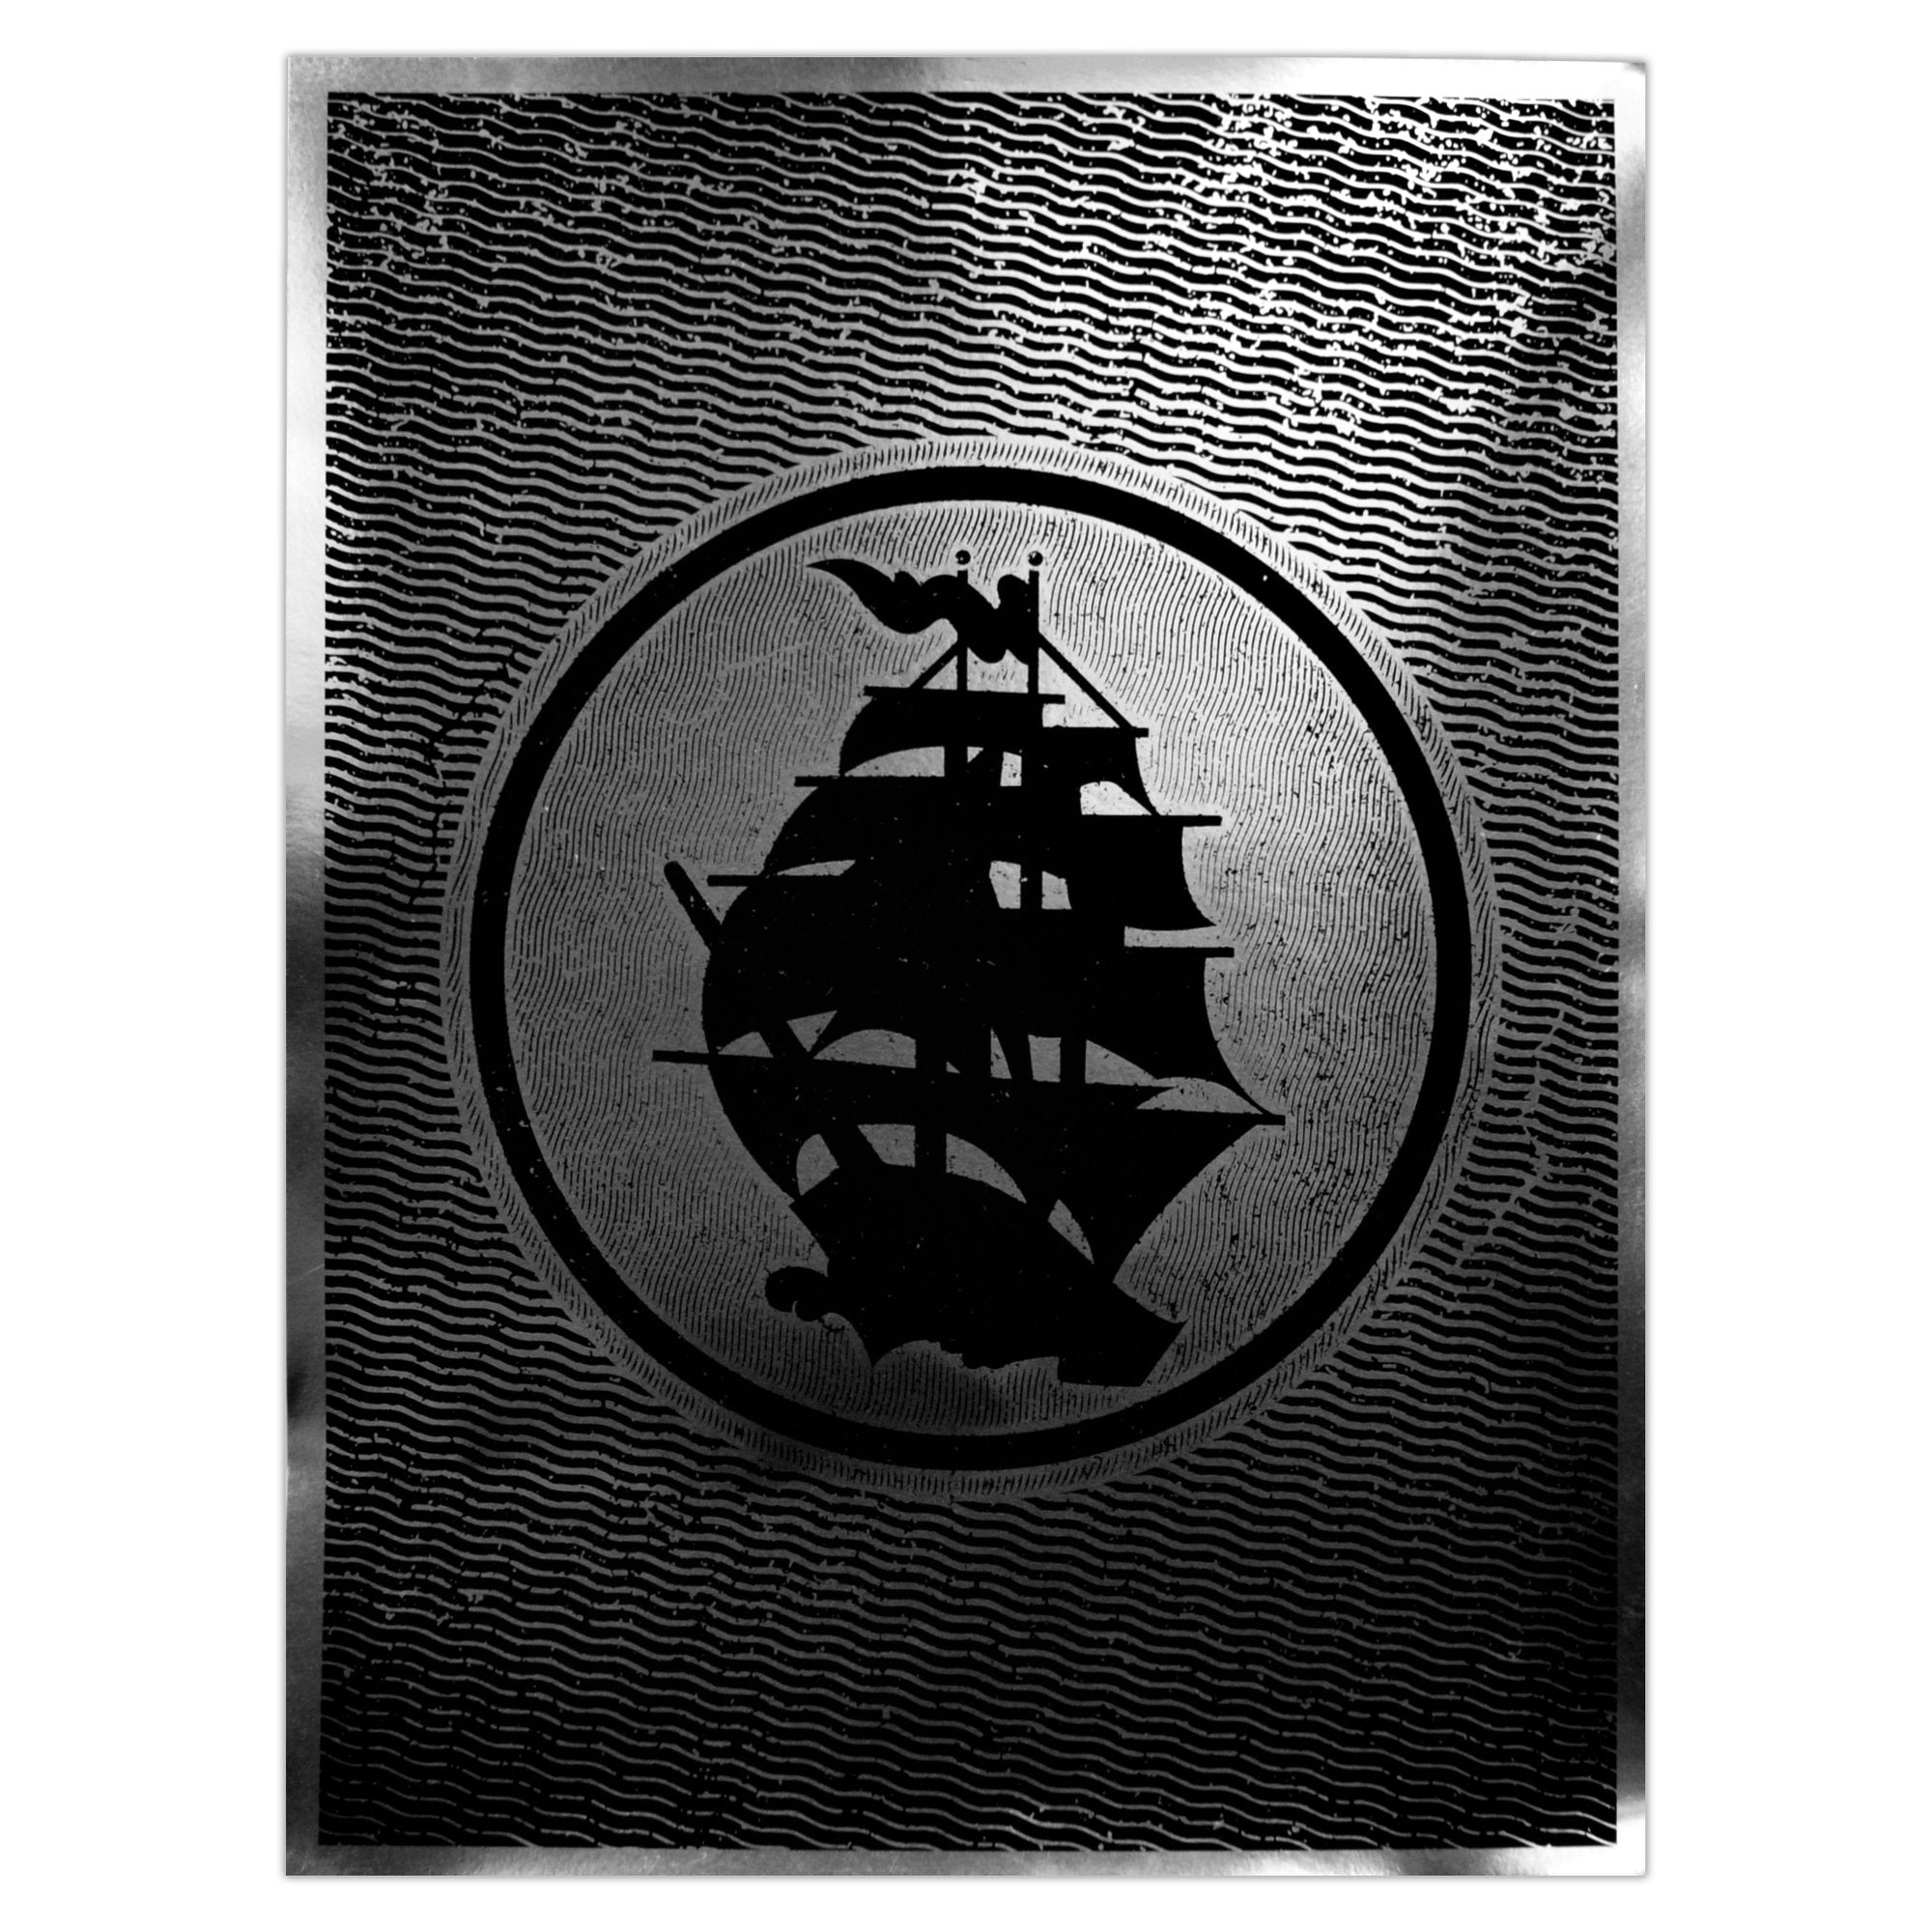 Pirates Press - Circle Logo - Silver Foil - Screenprinted Poster